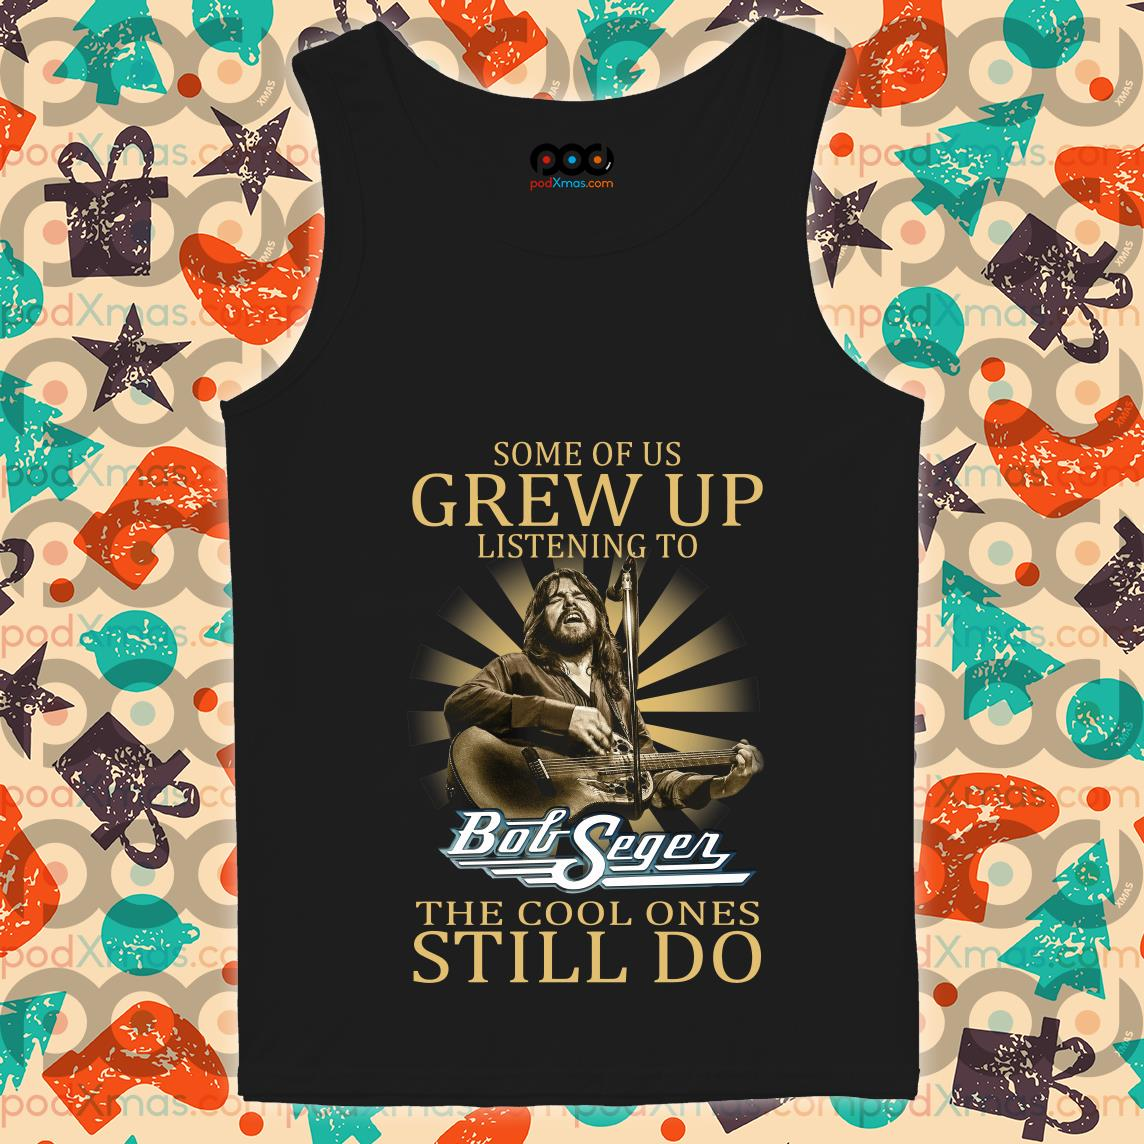 Some of us grew up listening to Bob Seger the cool ones still do tank top